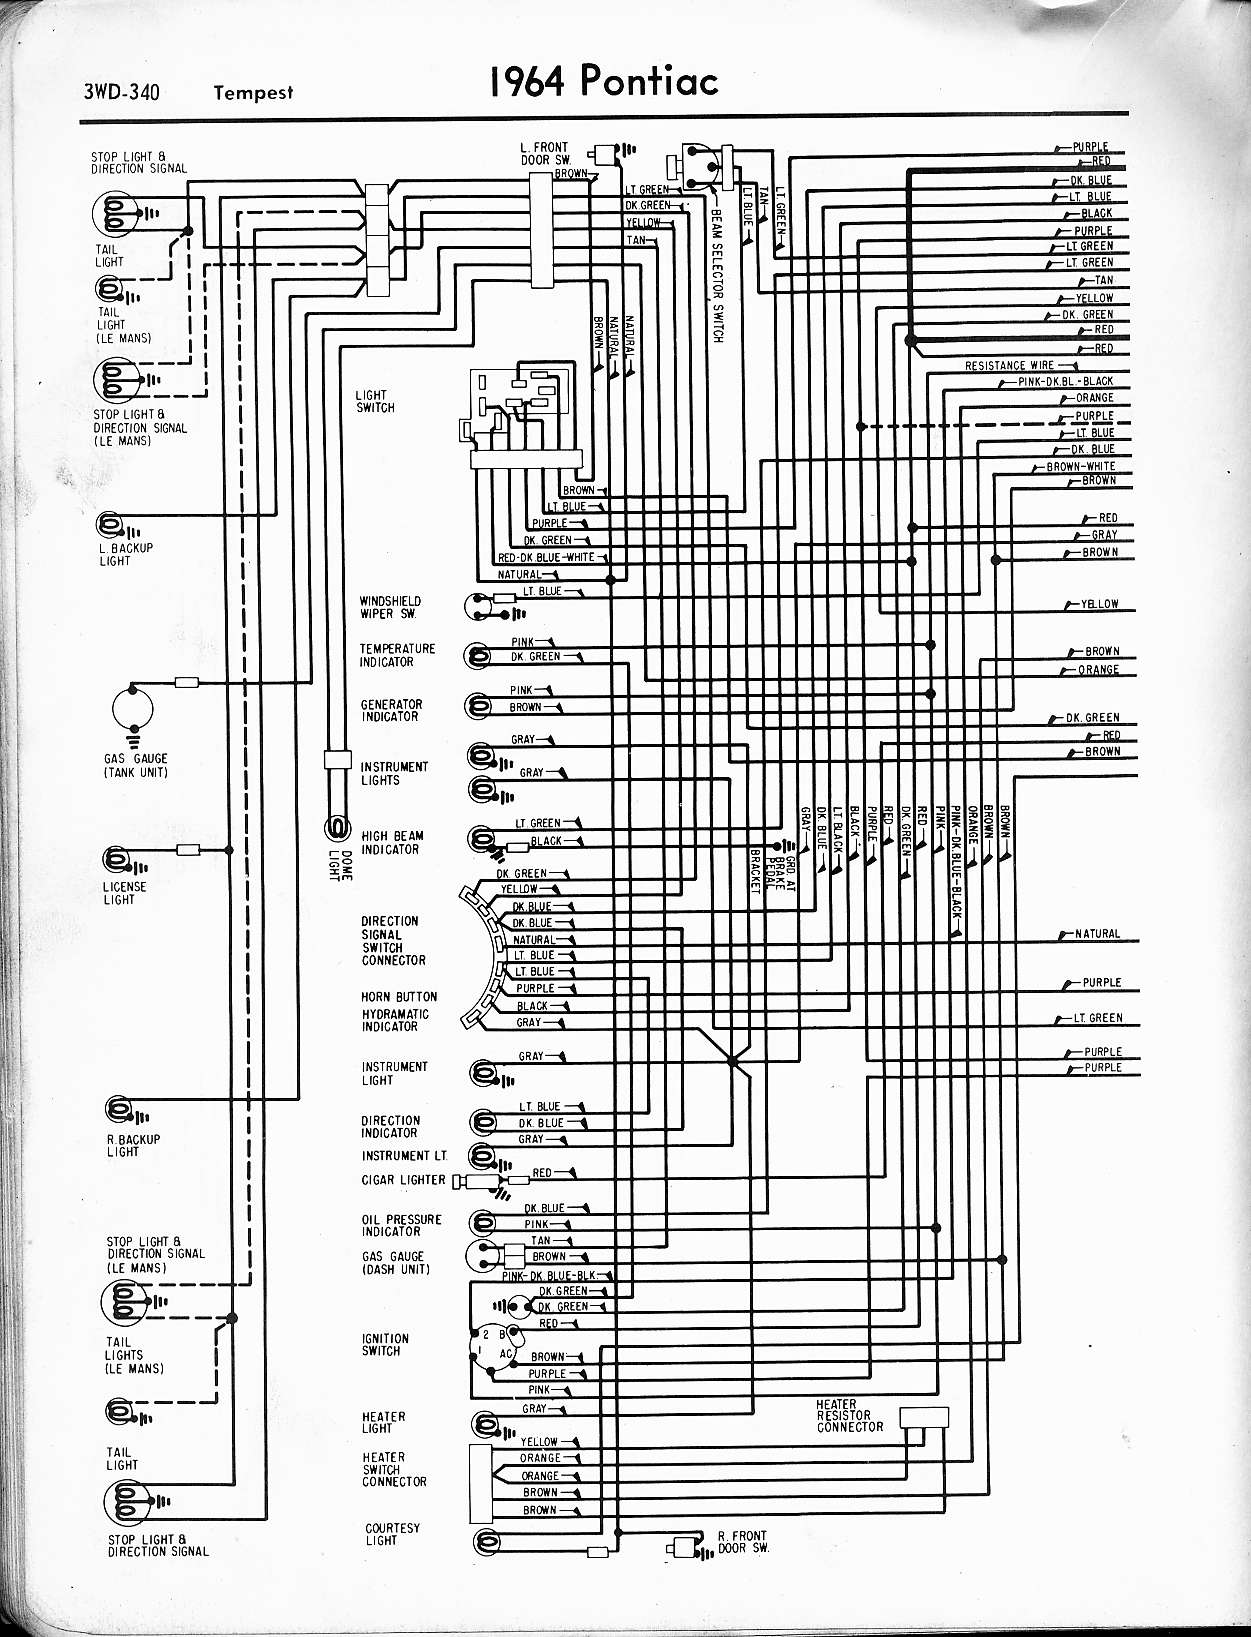 wiring diagram likewise diagram likewise jeep cj tachometer 1985 chevy truck wiring diagram free c3 corvette fuse diagram wiring diagram